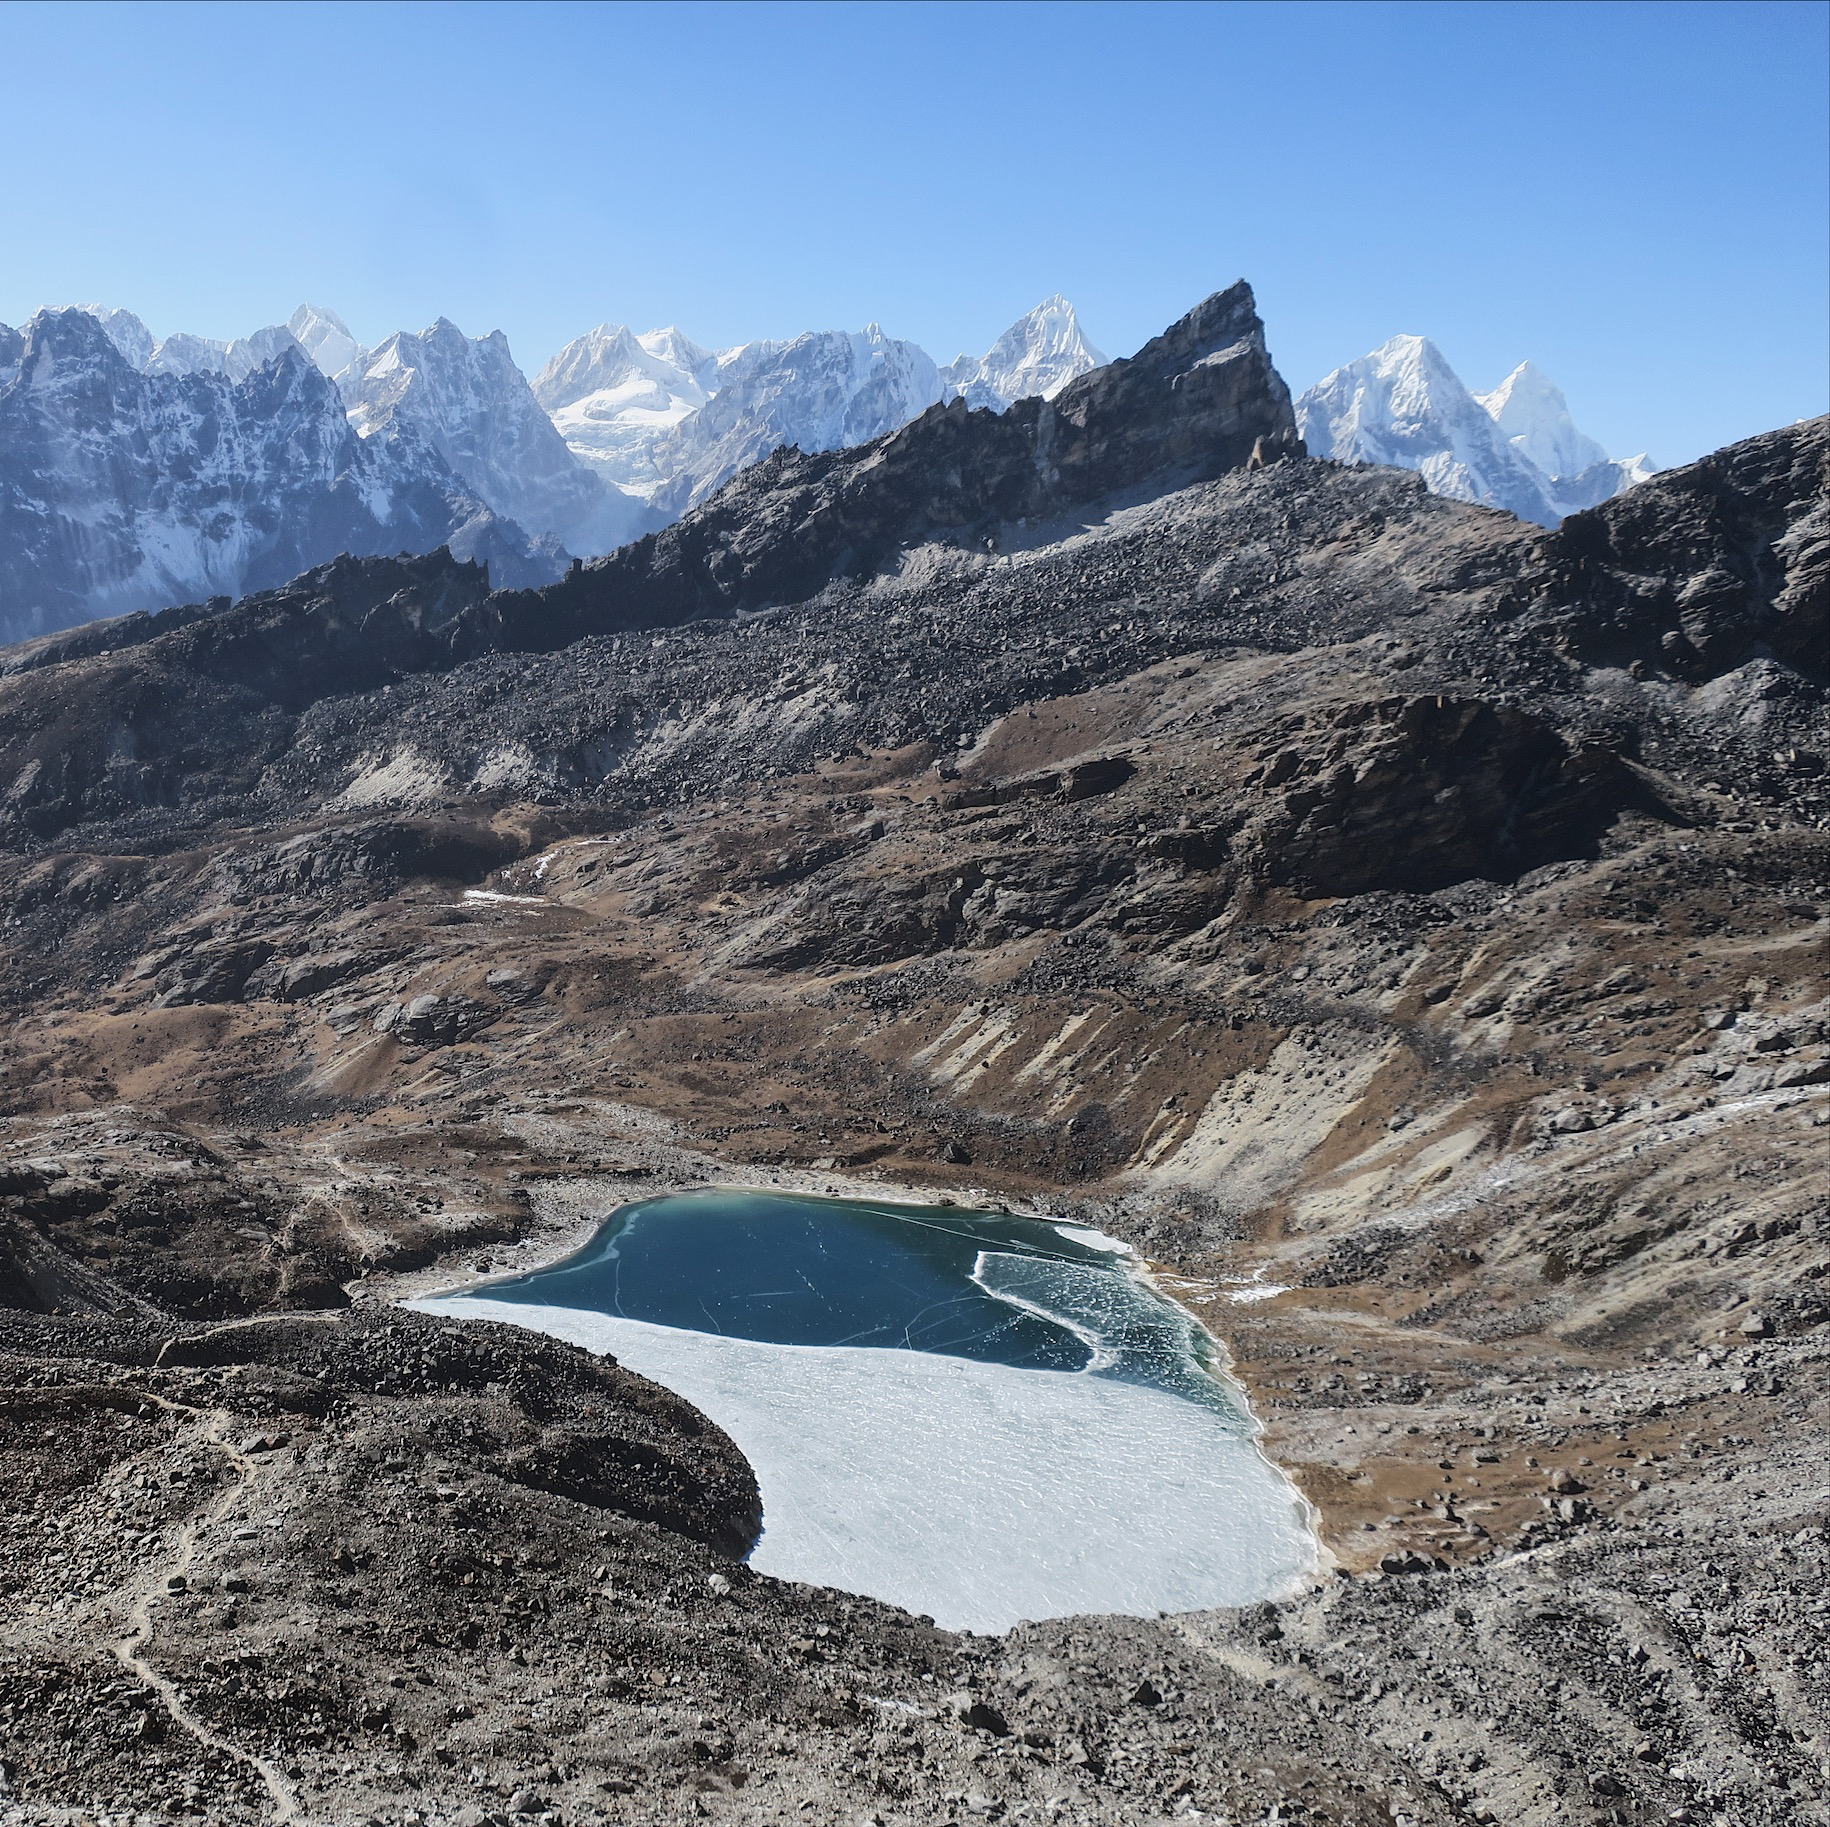 A pretty dramatic demonstration of the extreme temperature variances in the Himalaya. Also a really dope view.